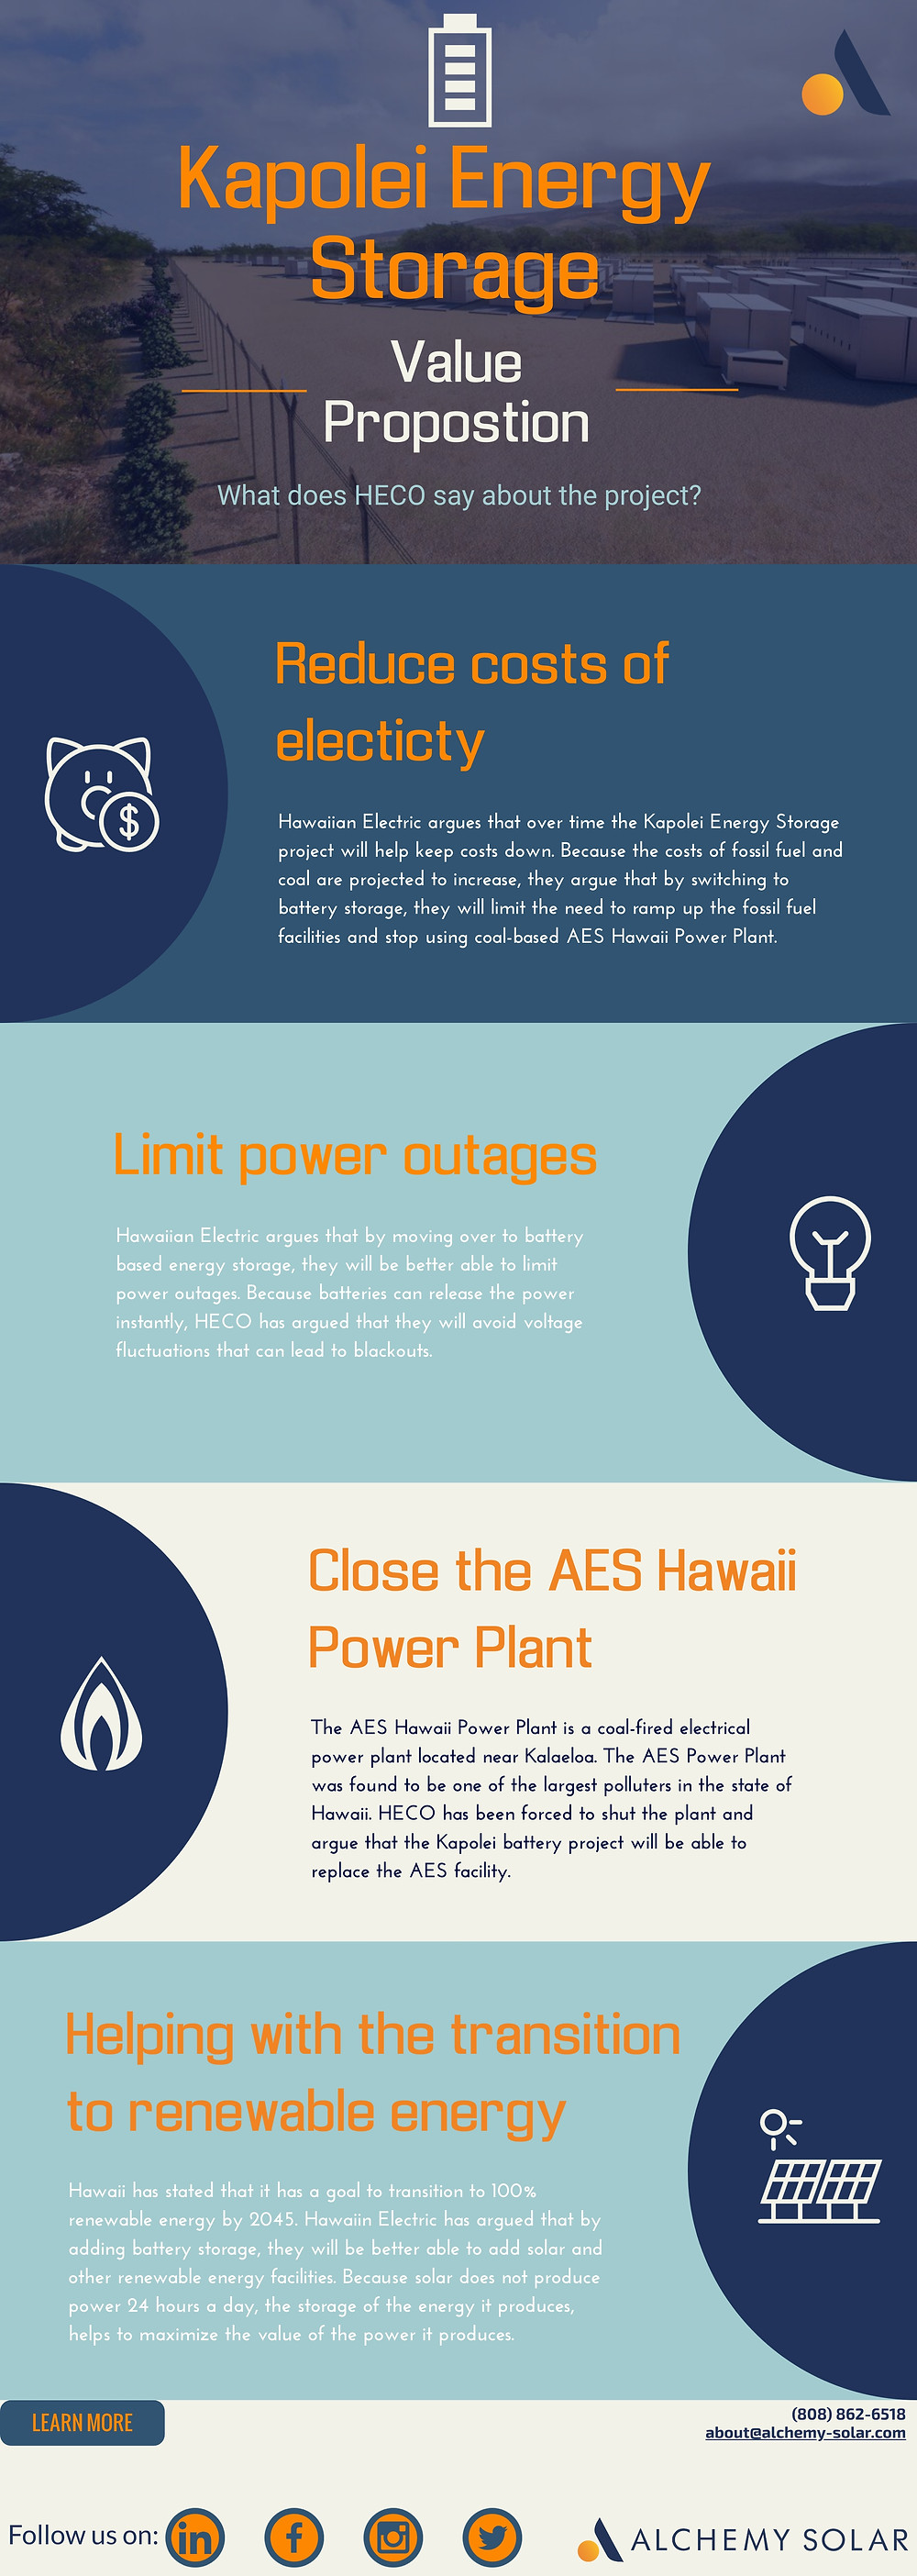 What HECO says the Kapolei Energy Storage Project will do for Oahu